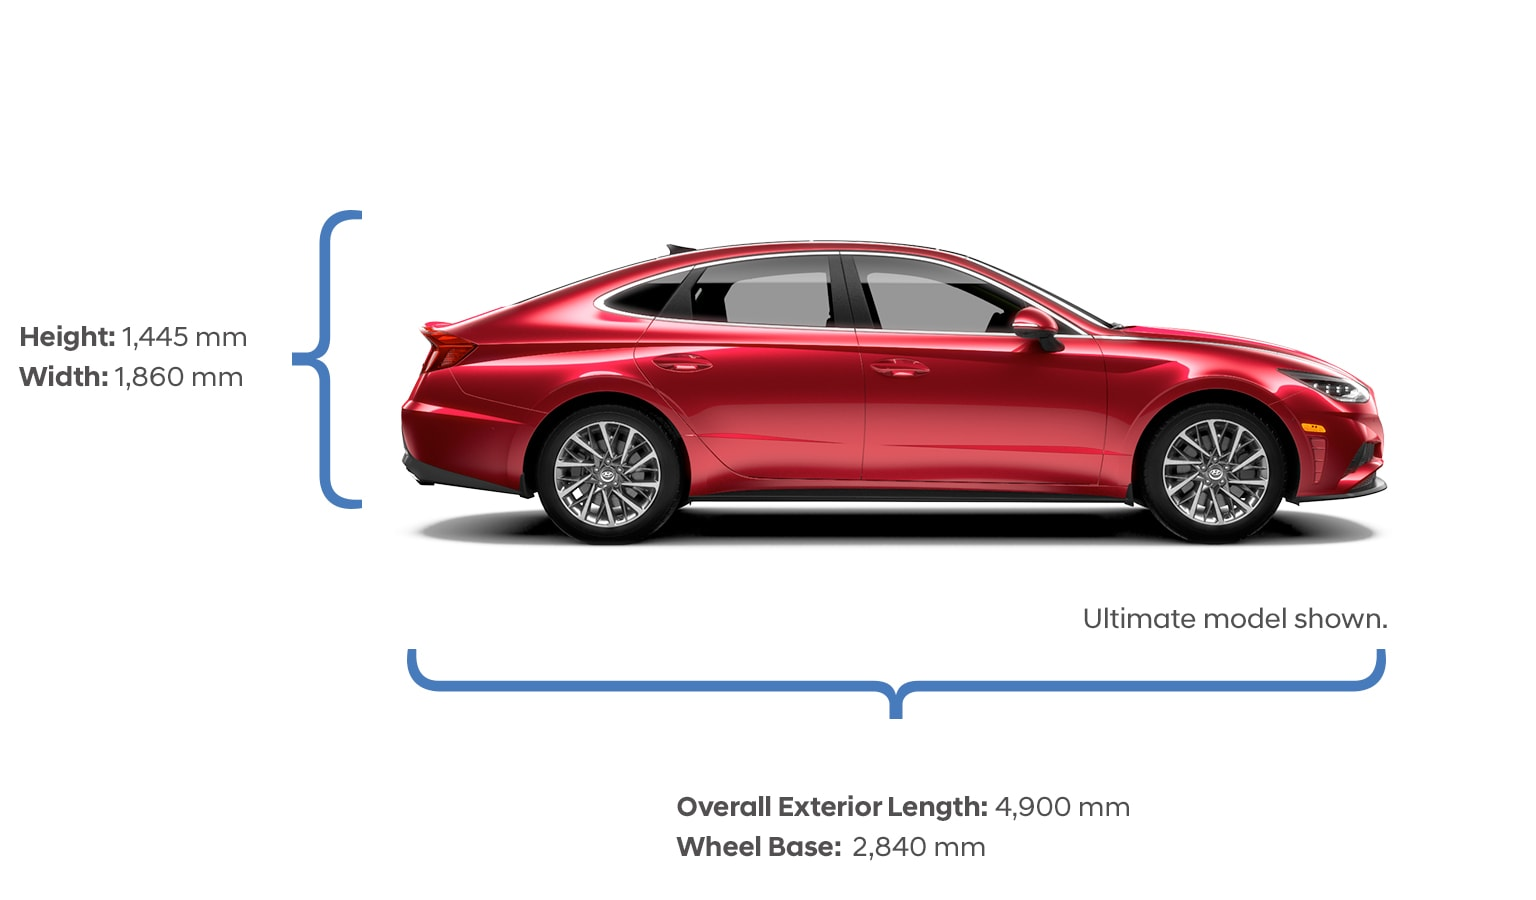 Height and width specifications of the 2020 Sonata.